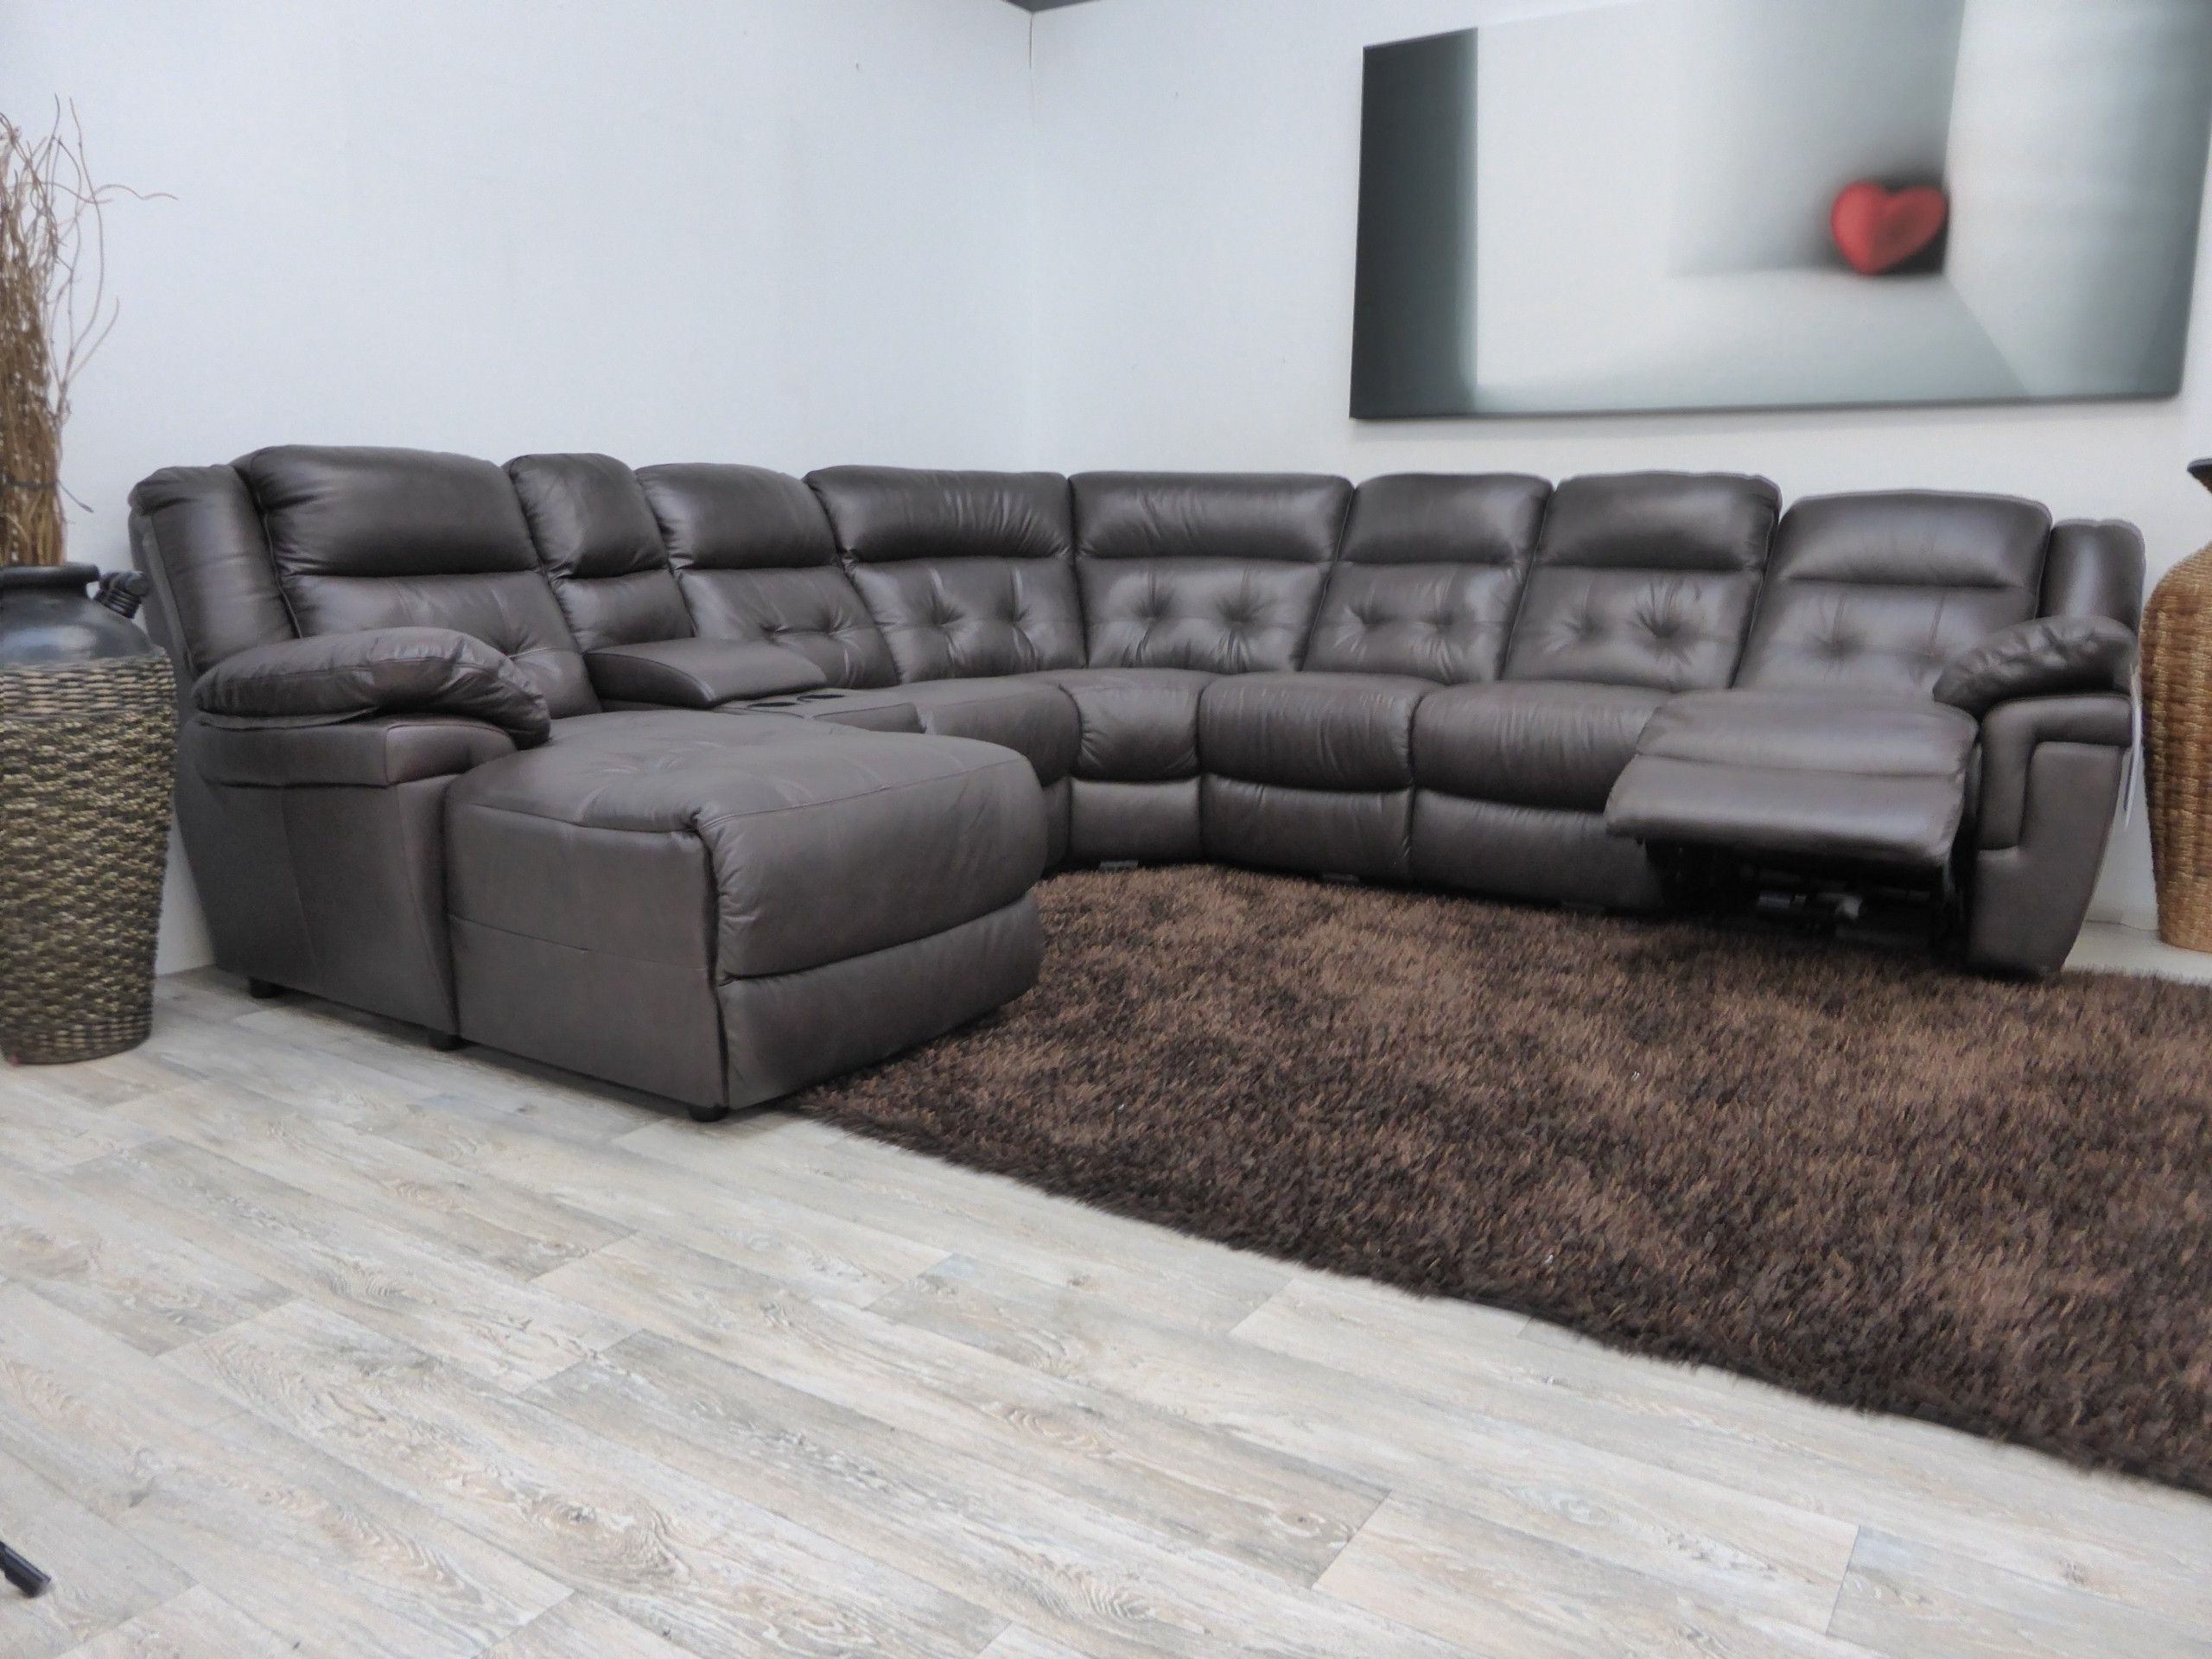 Queens Ny Sectional Sofas Within Recent L Shaped Sofa Design With Black Upholstery Faux Leather Sofa (Gallery 11 of 20)